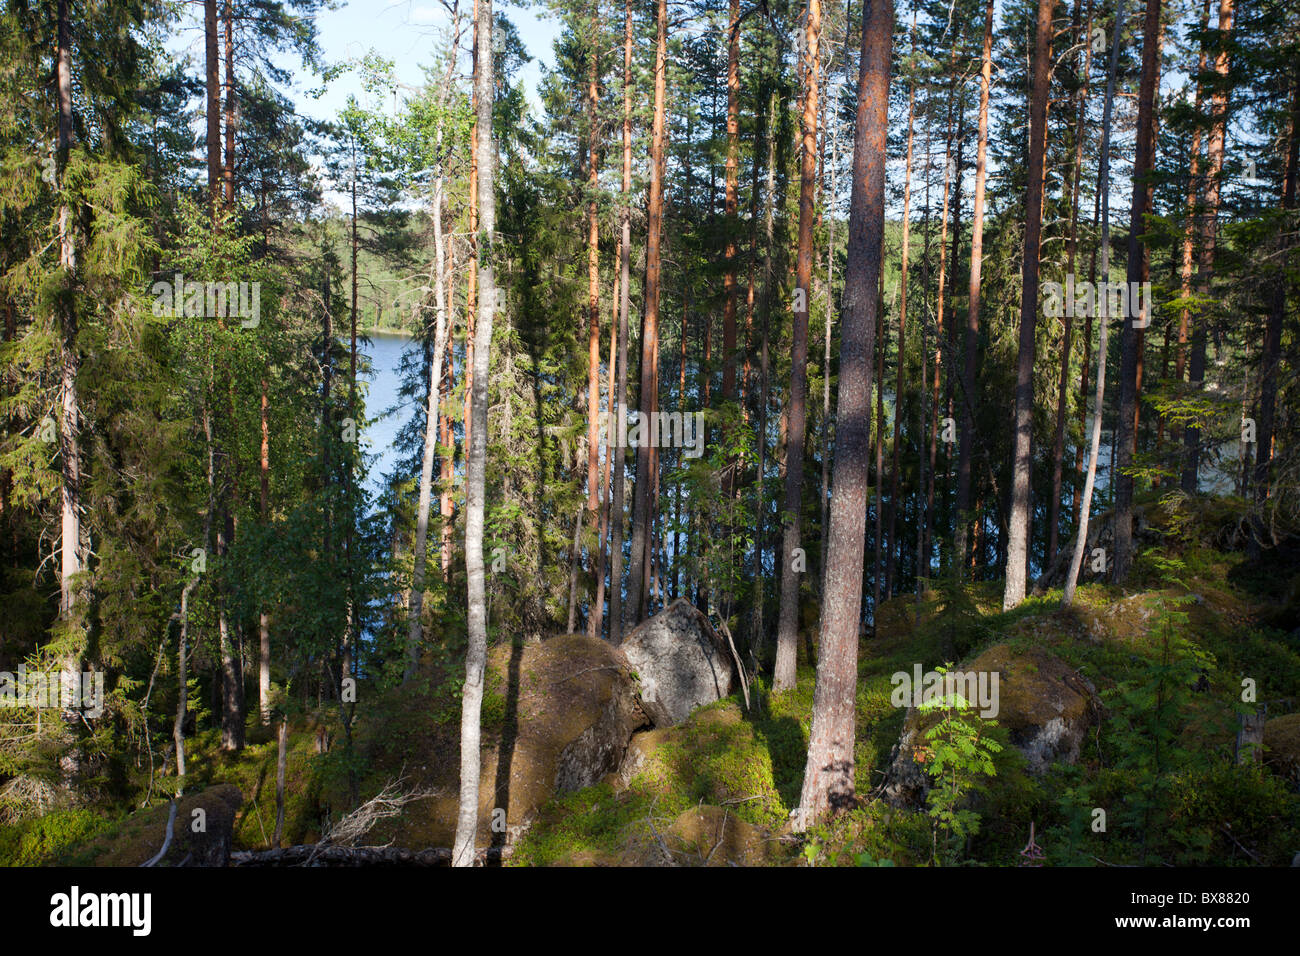 View of Finnish mixed forest with pine , spruce and birch trees , Finland - Stock Image